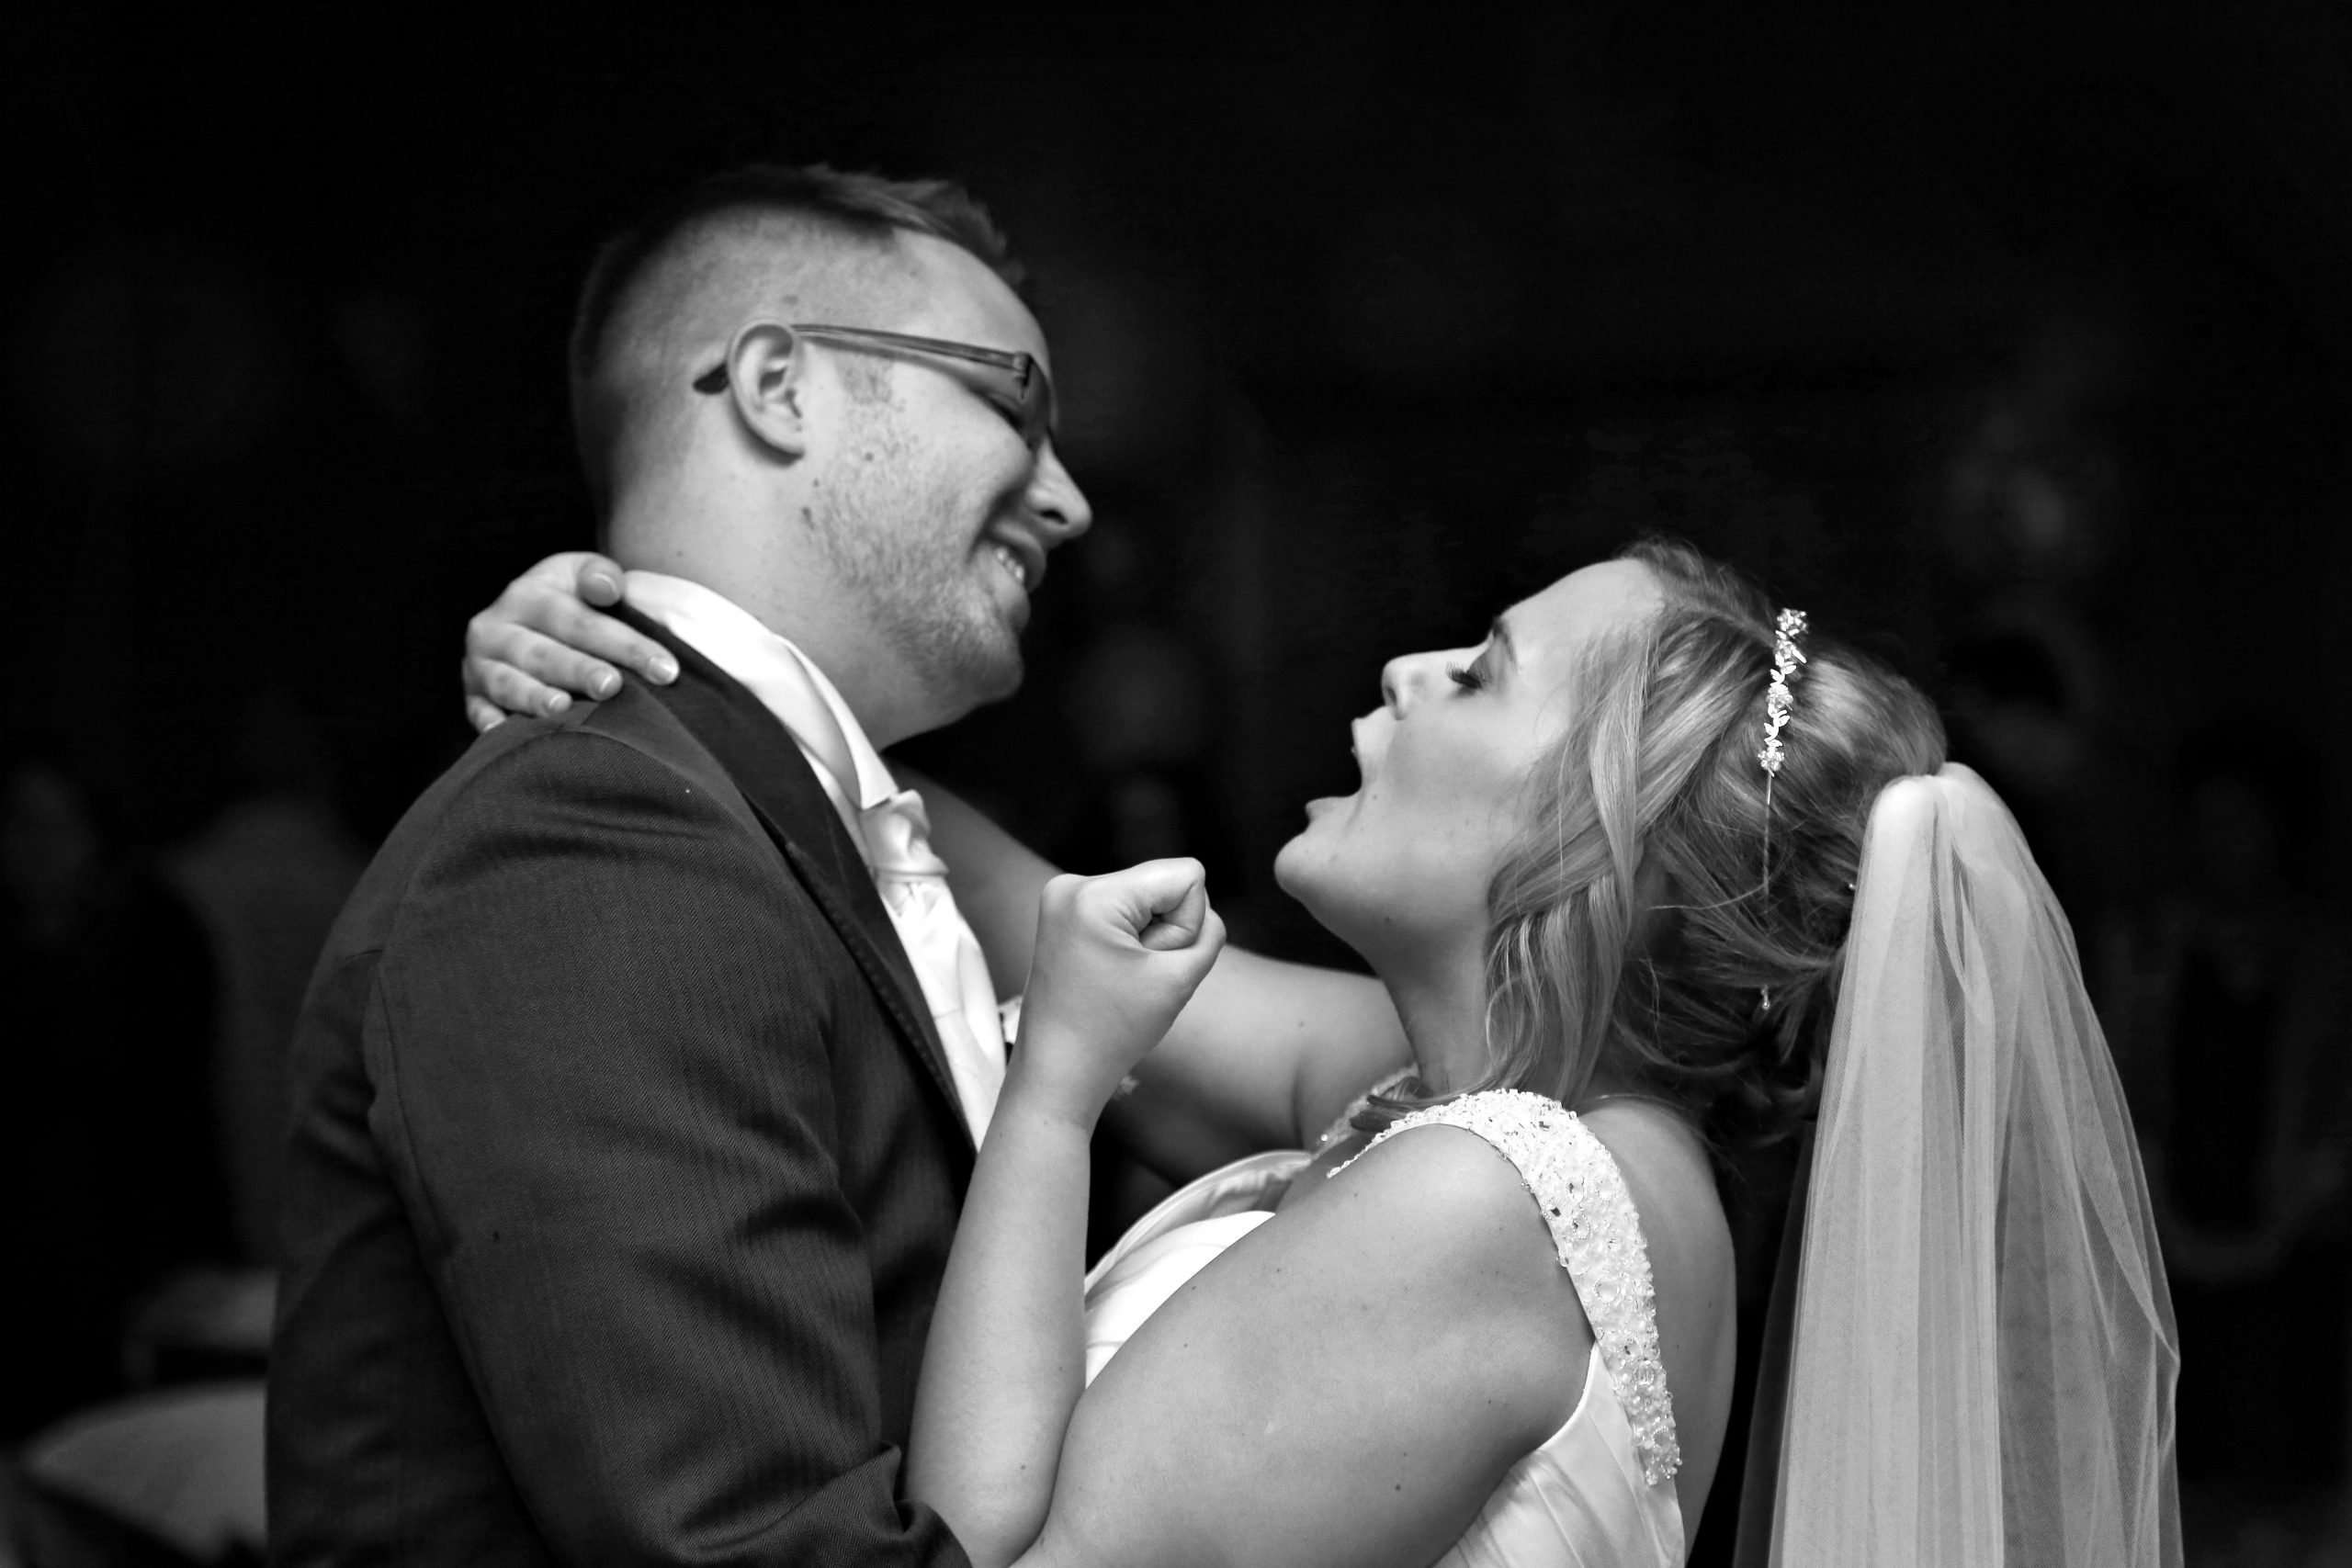 Black and White photo of Lisa and Darren in their wedding clothes. they are dancing and Lisa has her mouth open, singing with her fist pumped